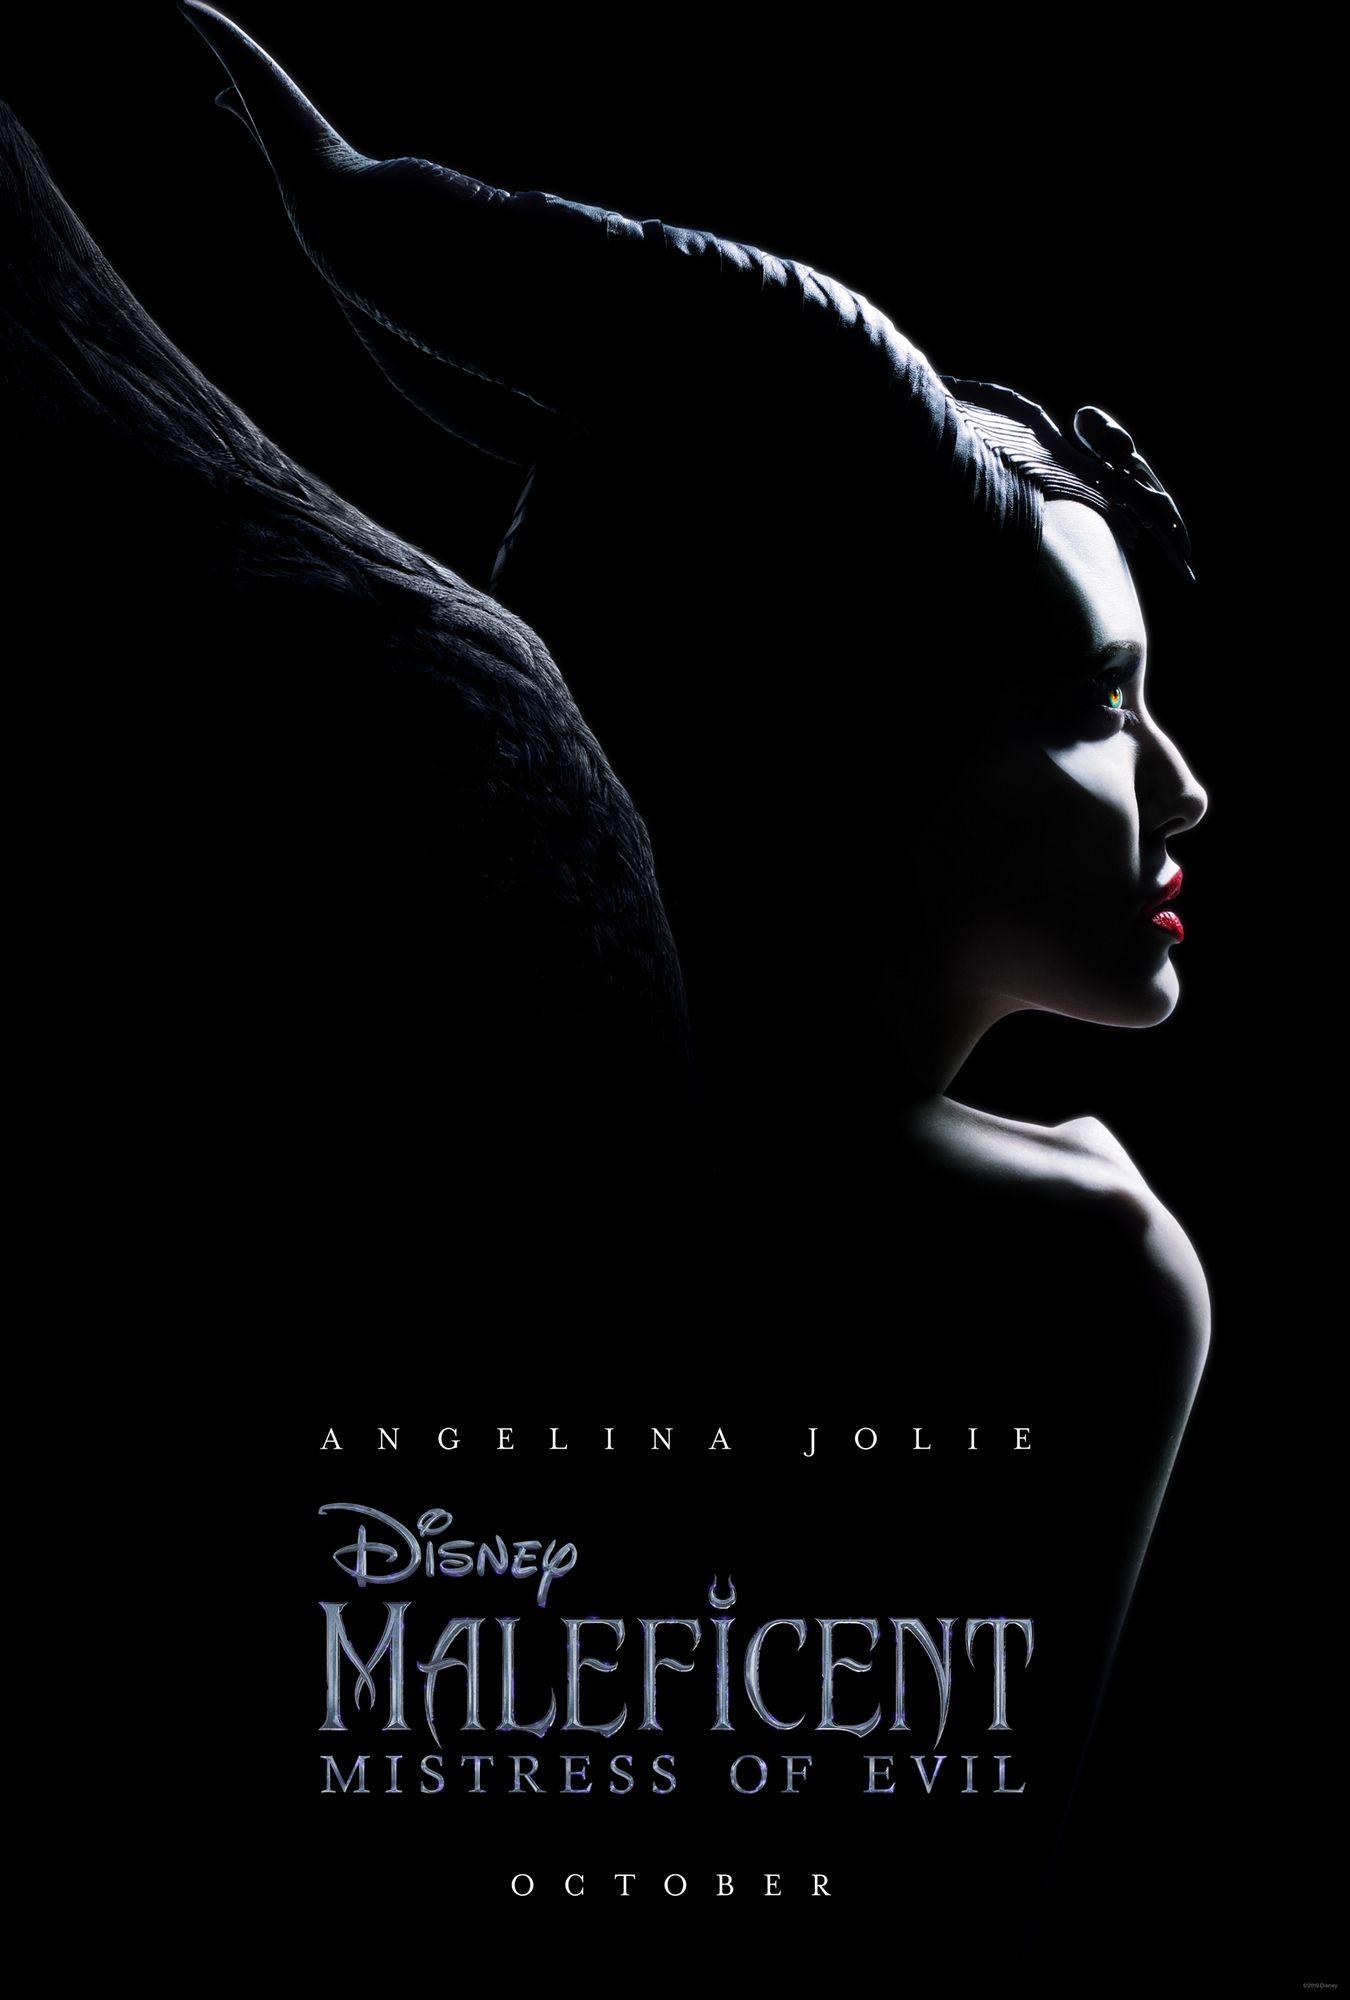 angelina jolie, elle fanning, maleficent 2, poster